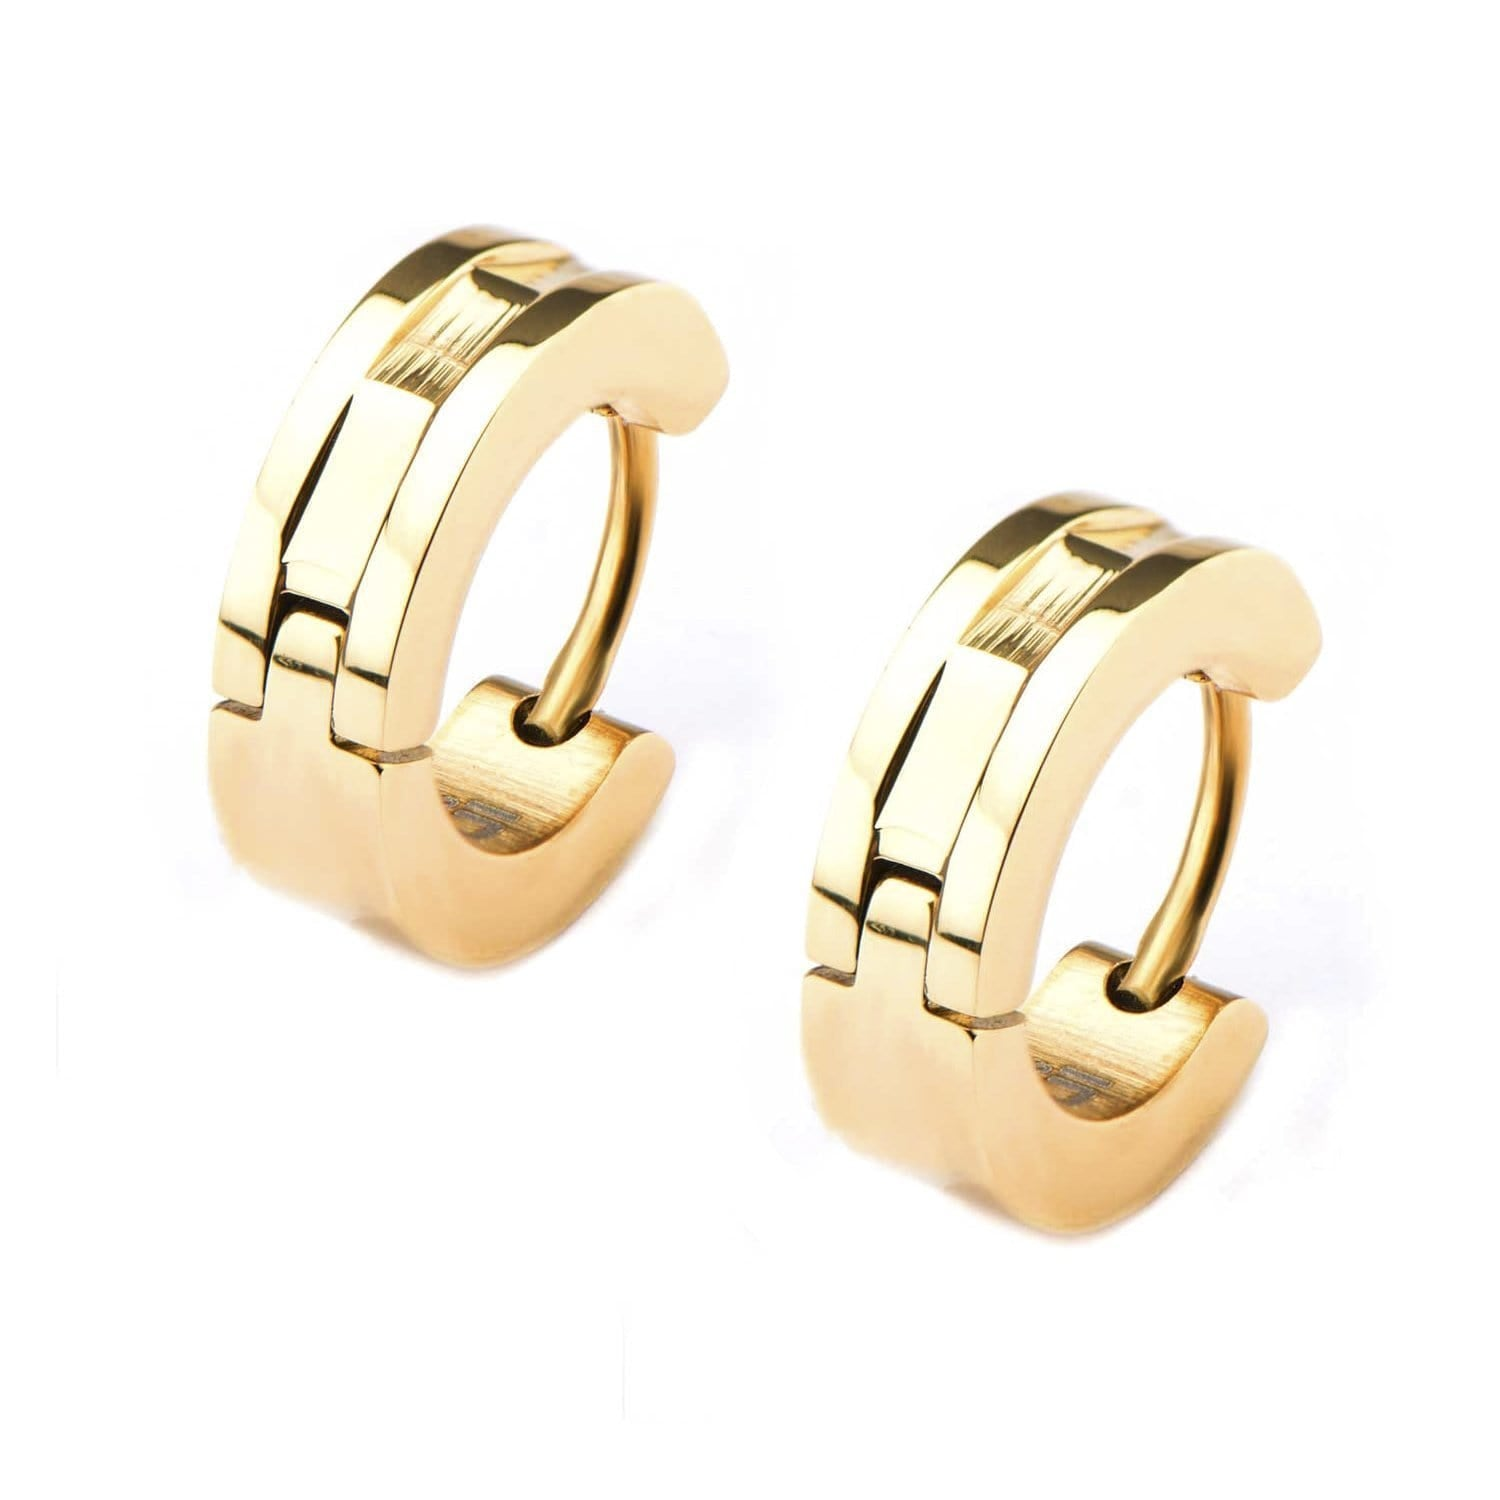 Gold Stainless Steel 4mm Industrial Cut Bali